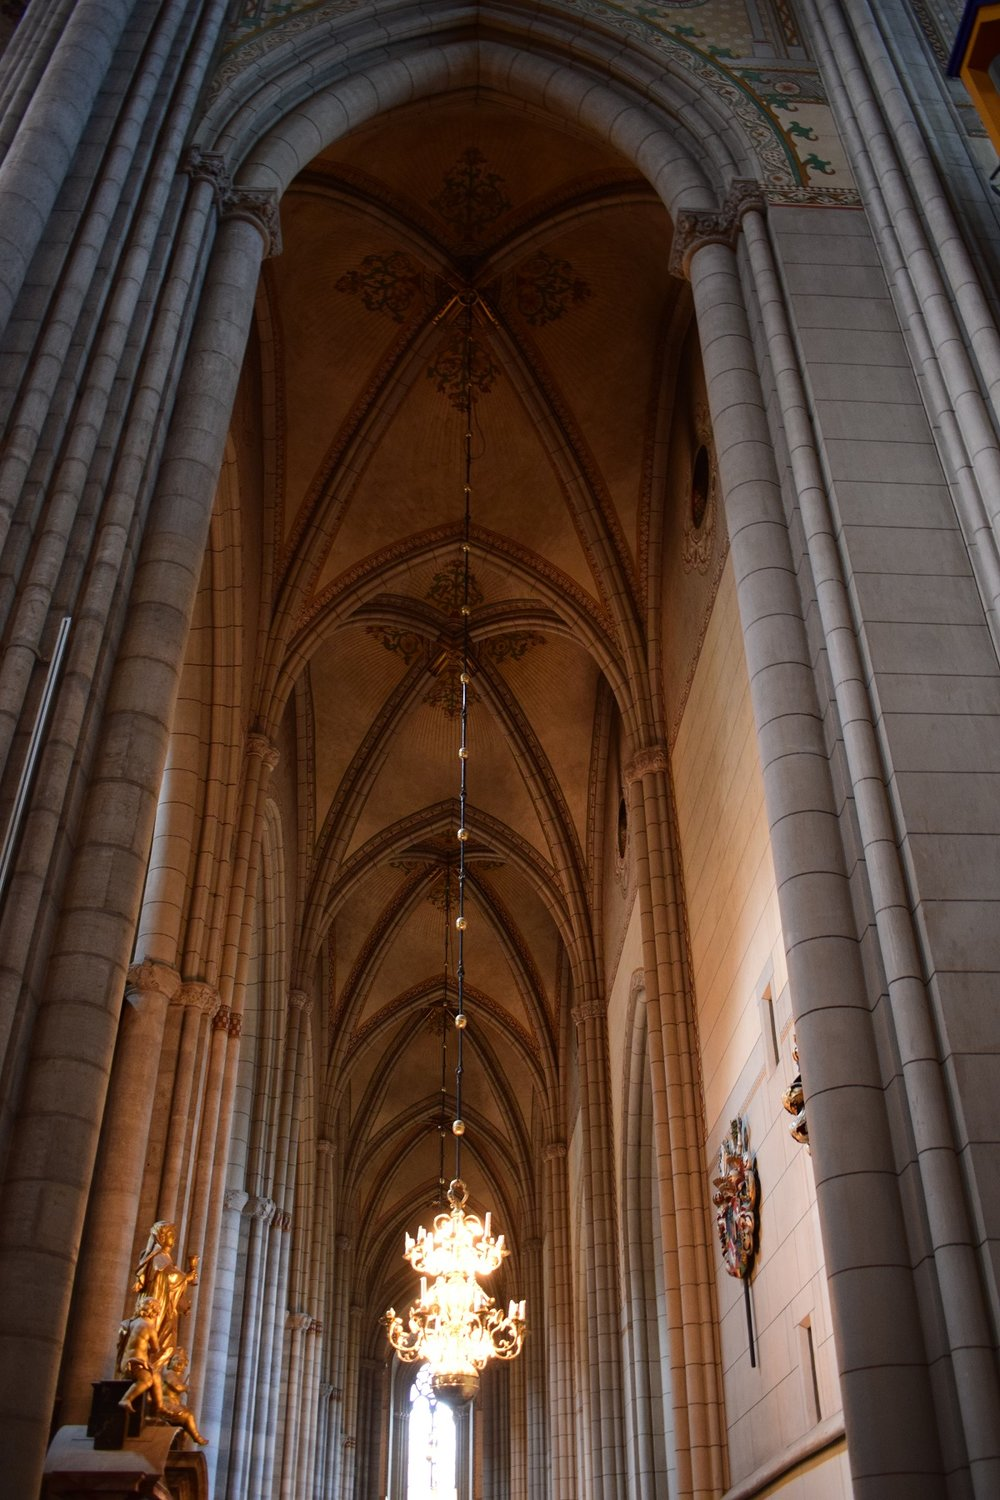 the aisle / side nave